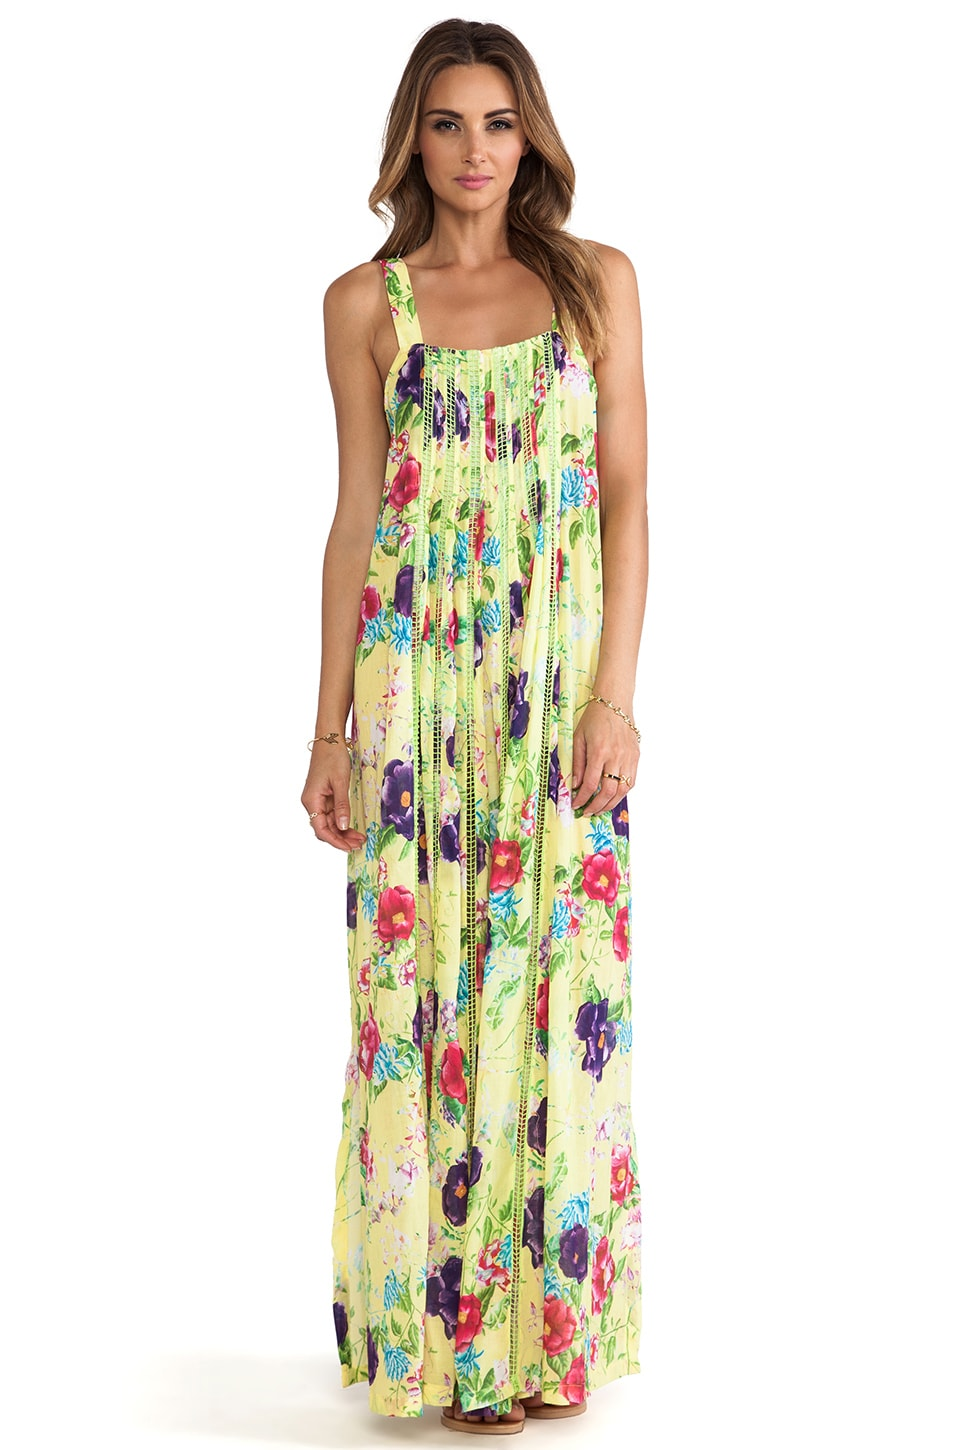 Seafolly Rumour Maxi Dress in Zest